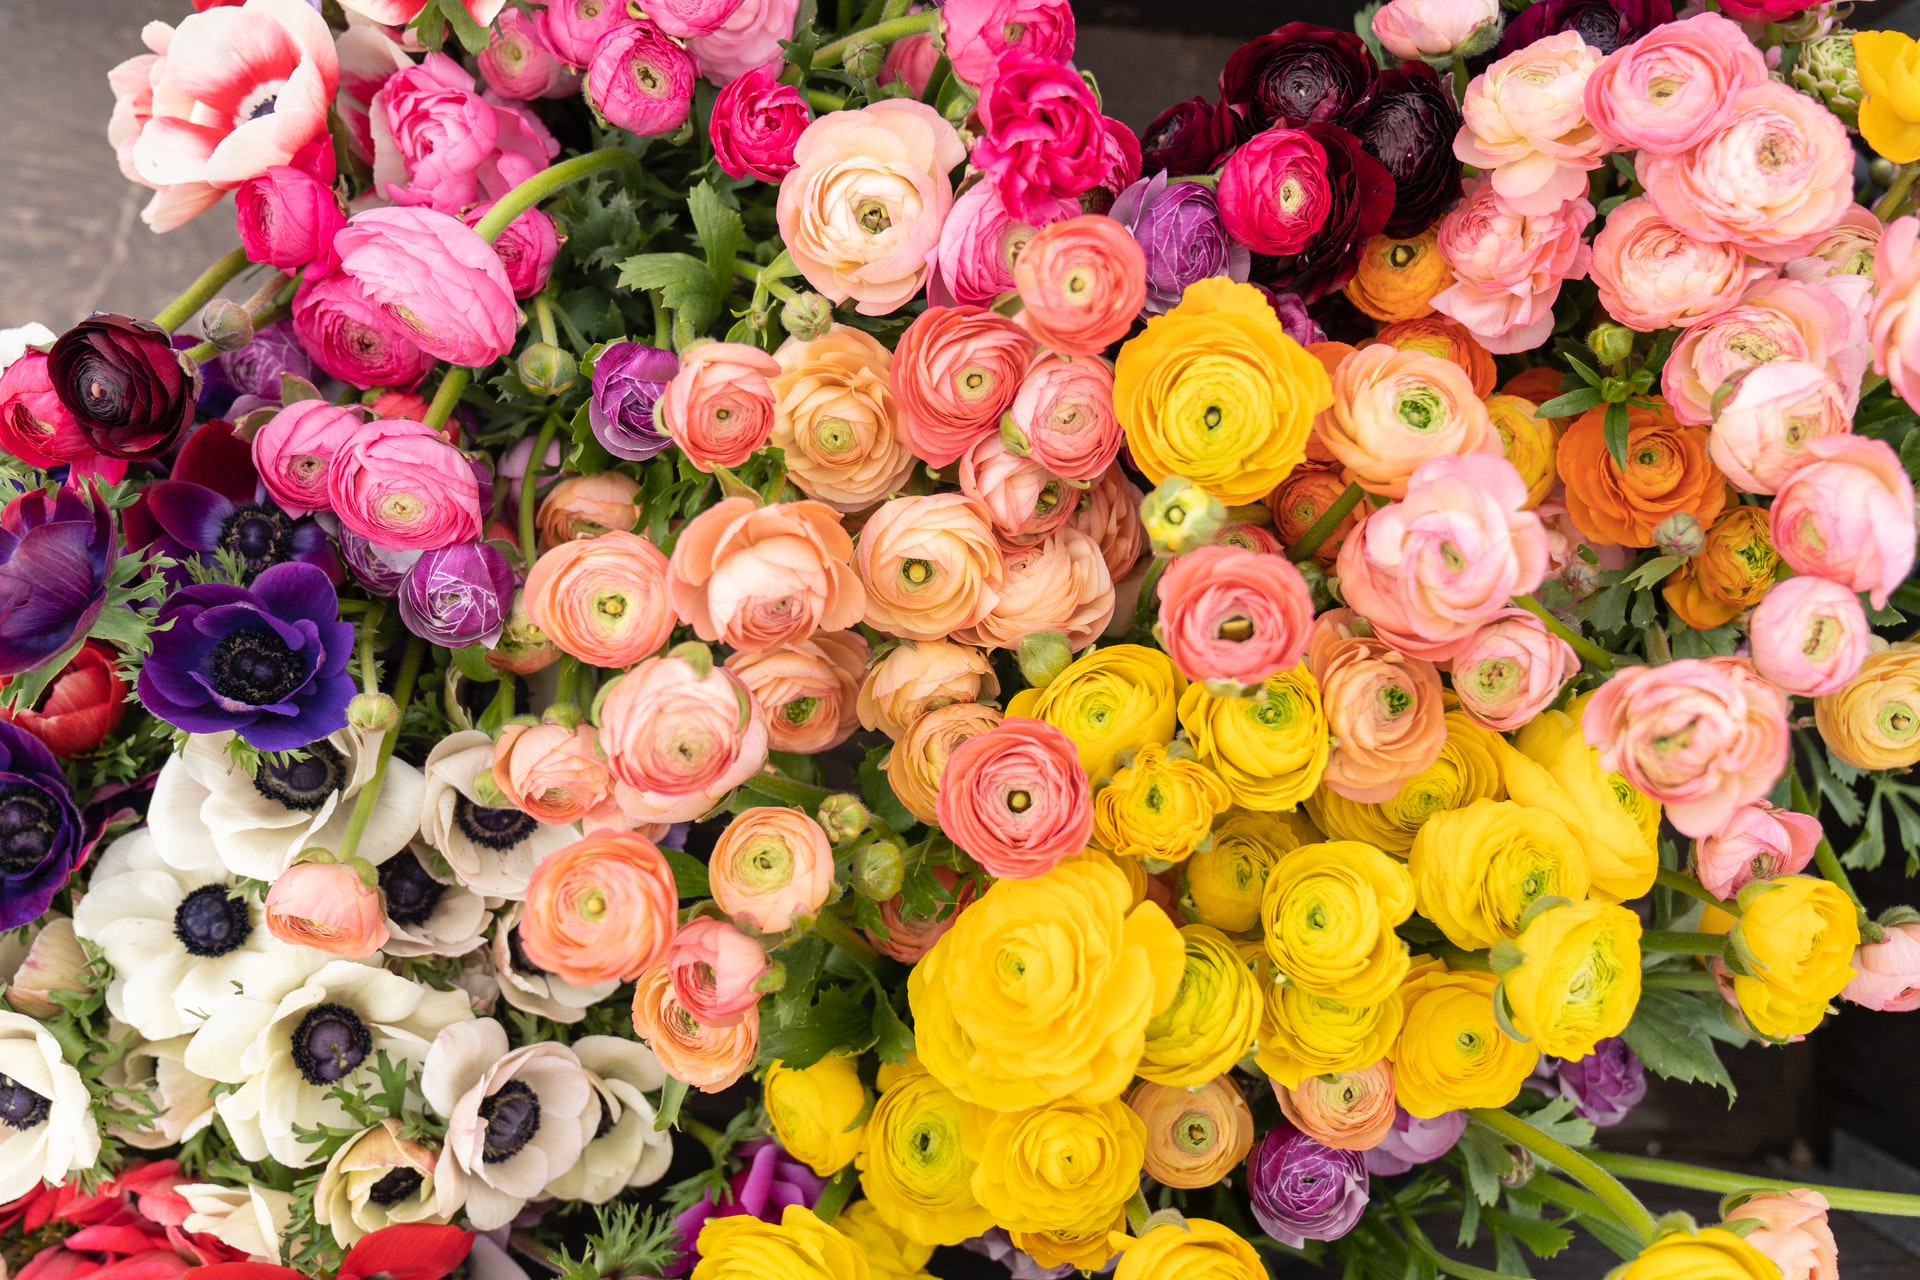 Surprise Mom With Fresh Blooms From House of Flowers